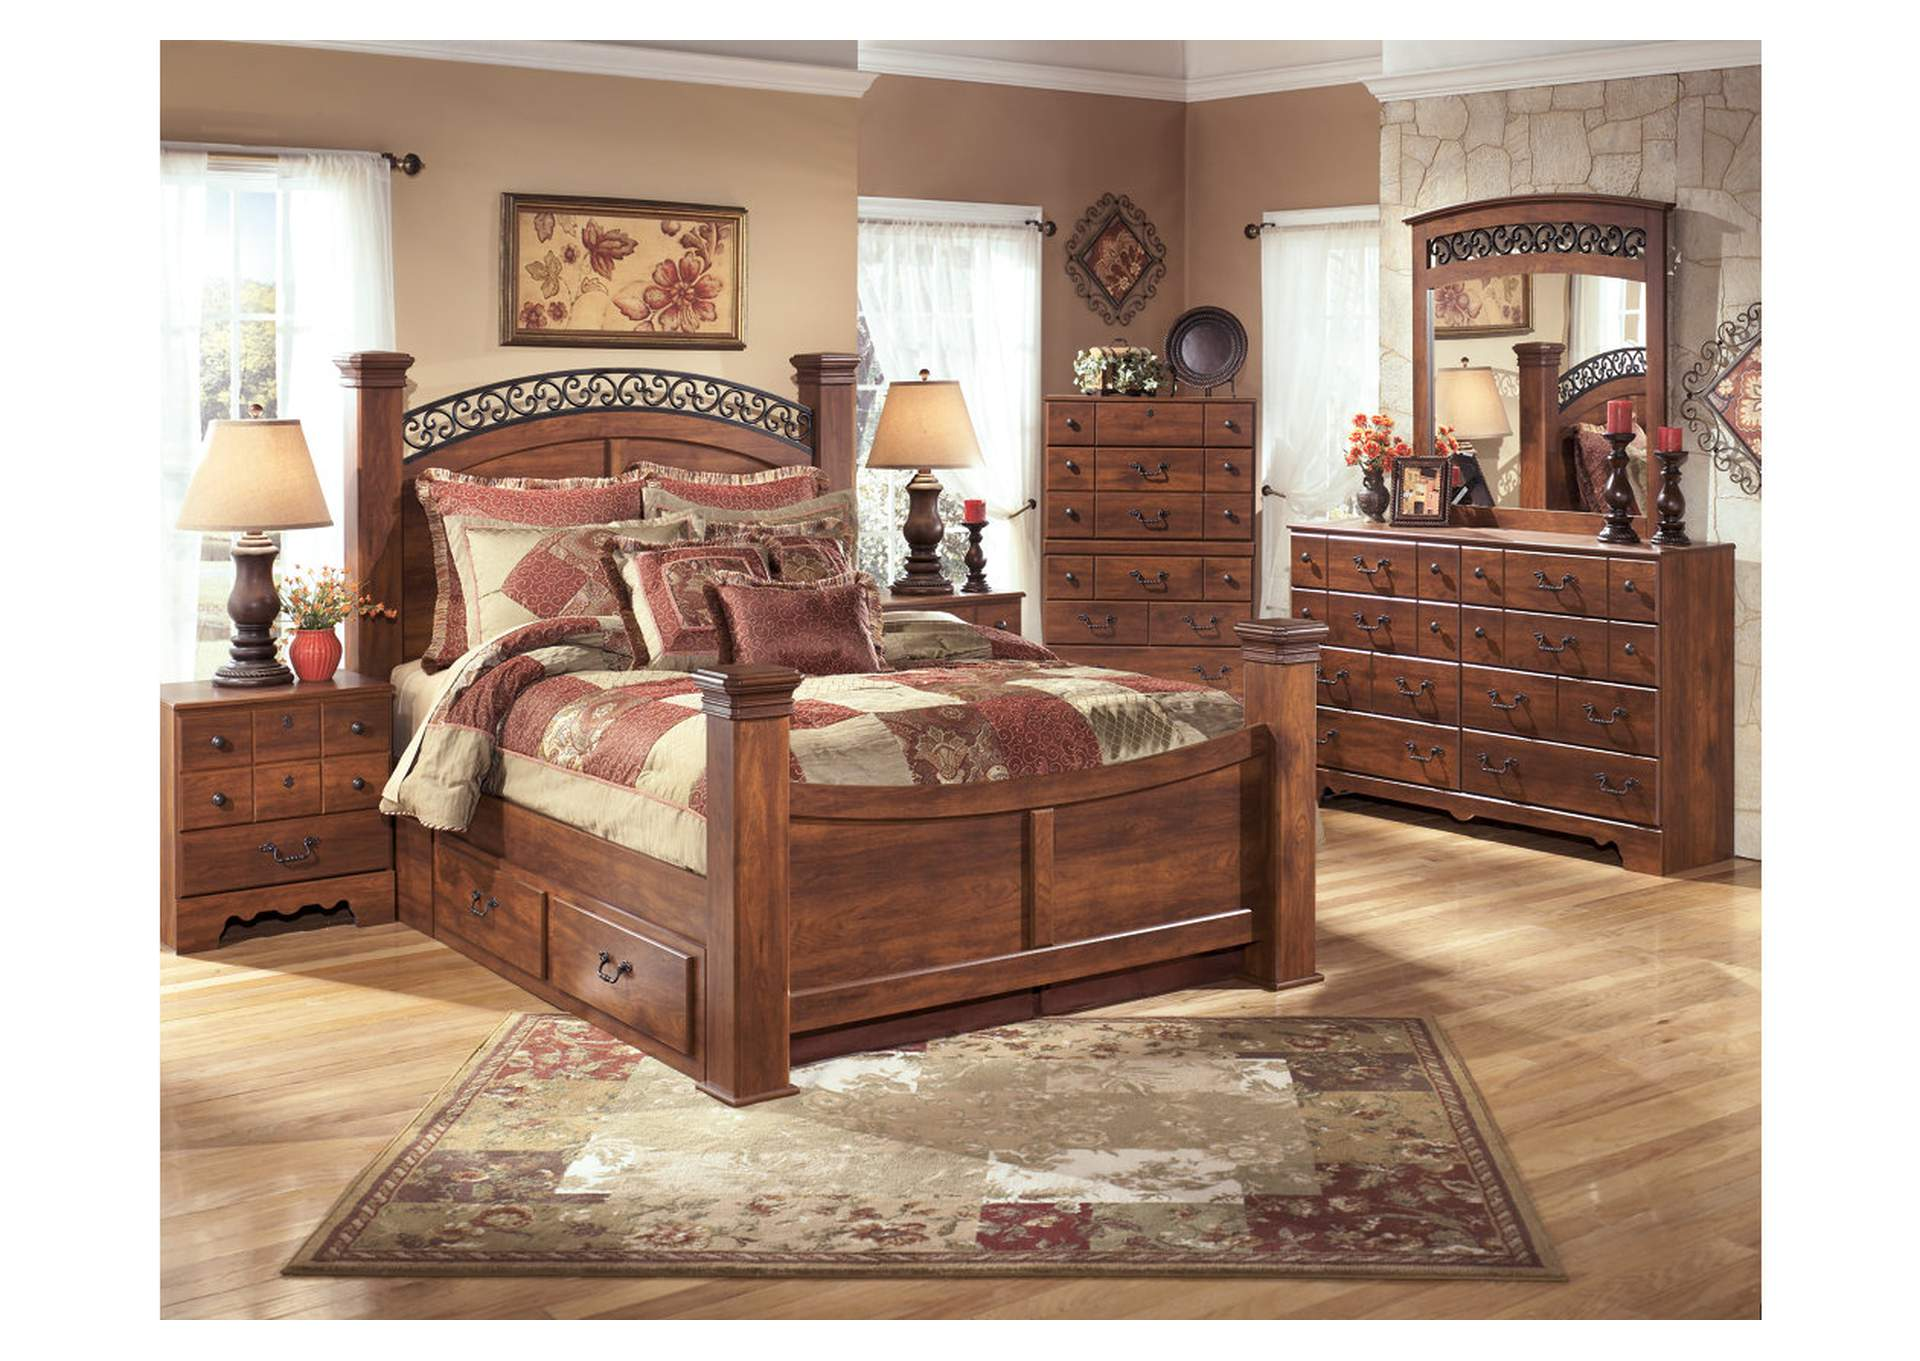 Timberline Queen Poster Storage Bed w/Dresser, Mirror & Drawer Chest,Signature Design By Ashley